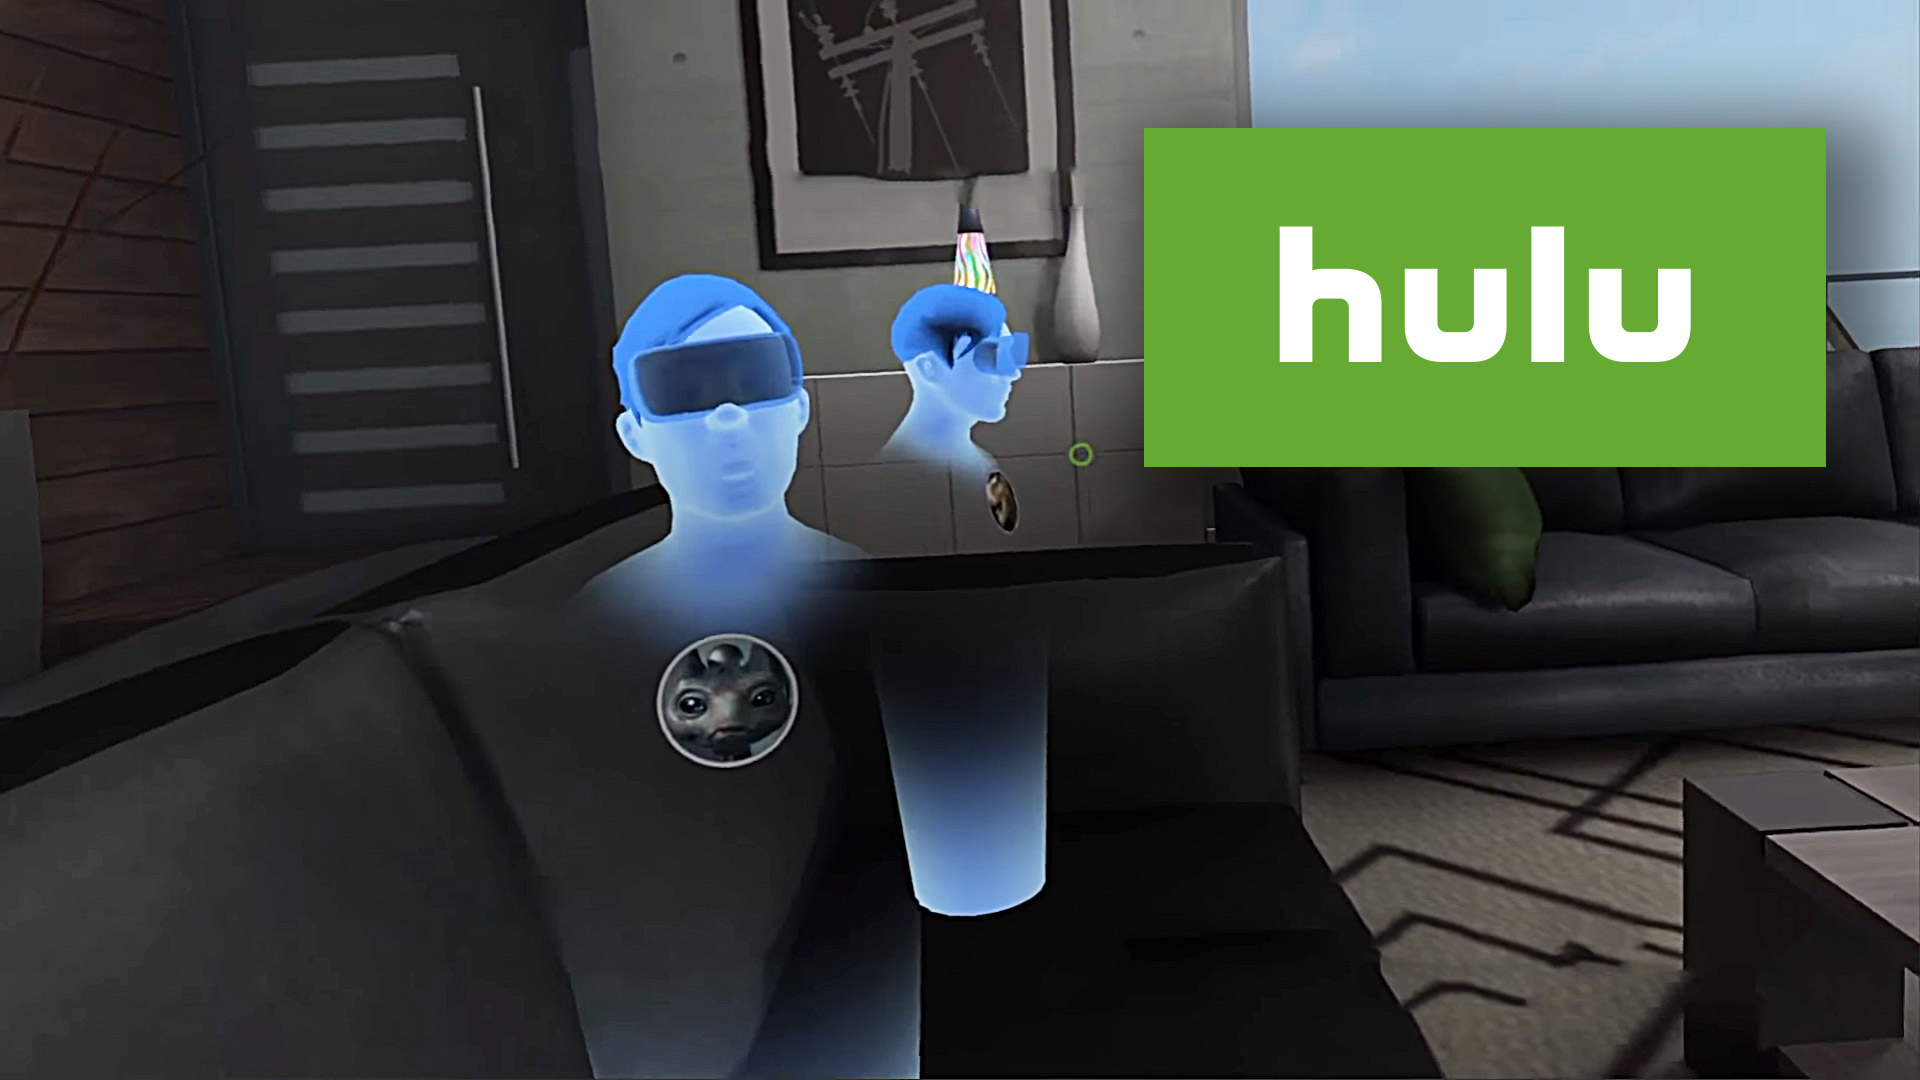 Hulu Beats Netflix To Social Viewing In Vr On Gear Vr